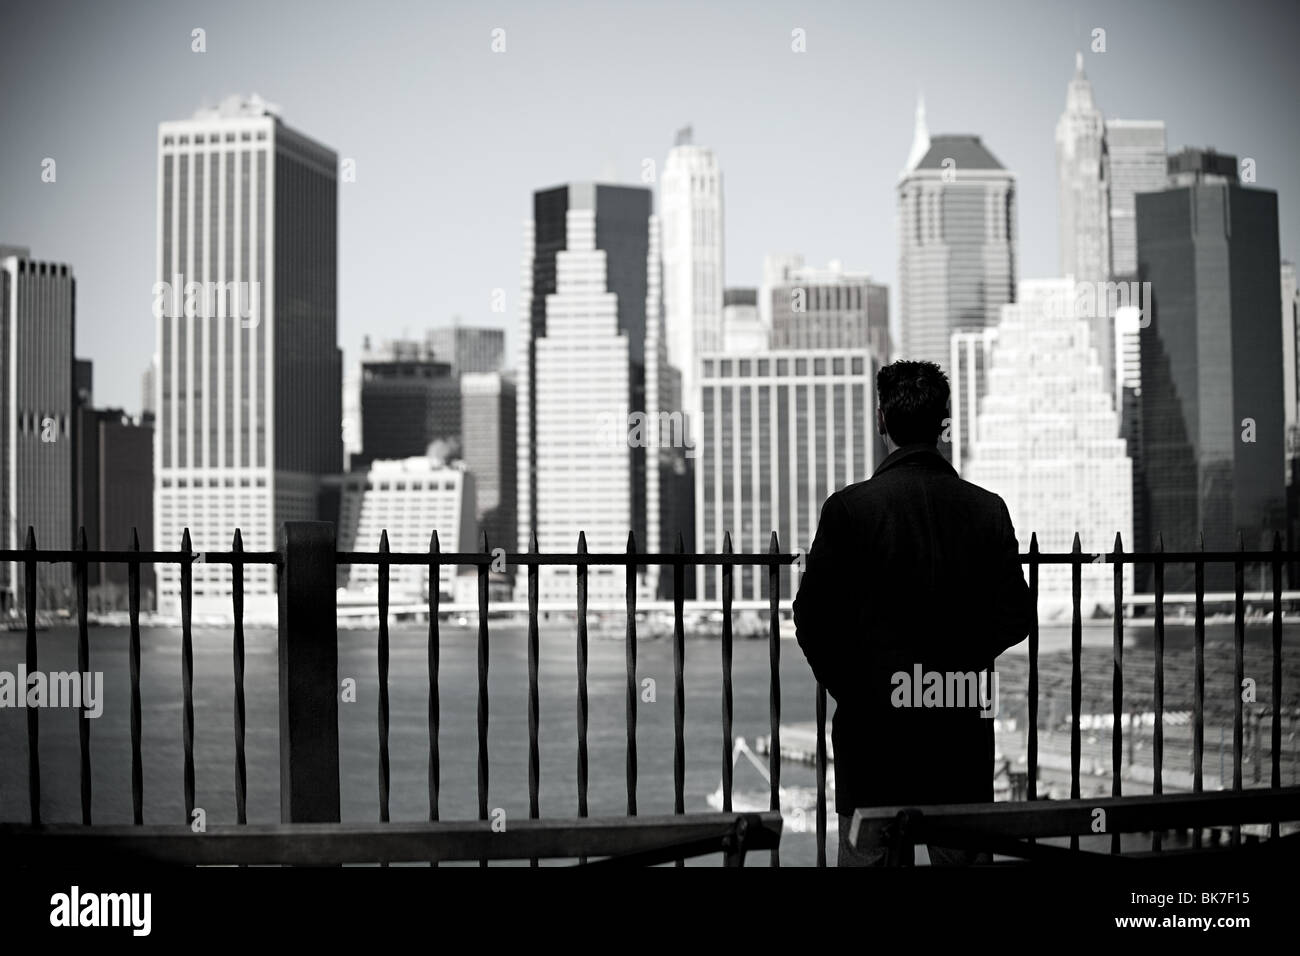 Man looking to lower manhattan from brooklyn heights promenade - Stock Image